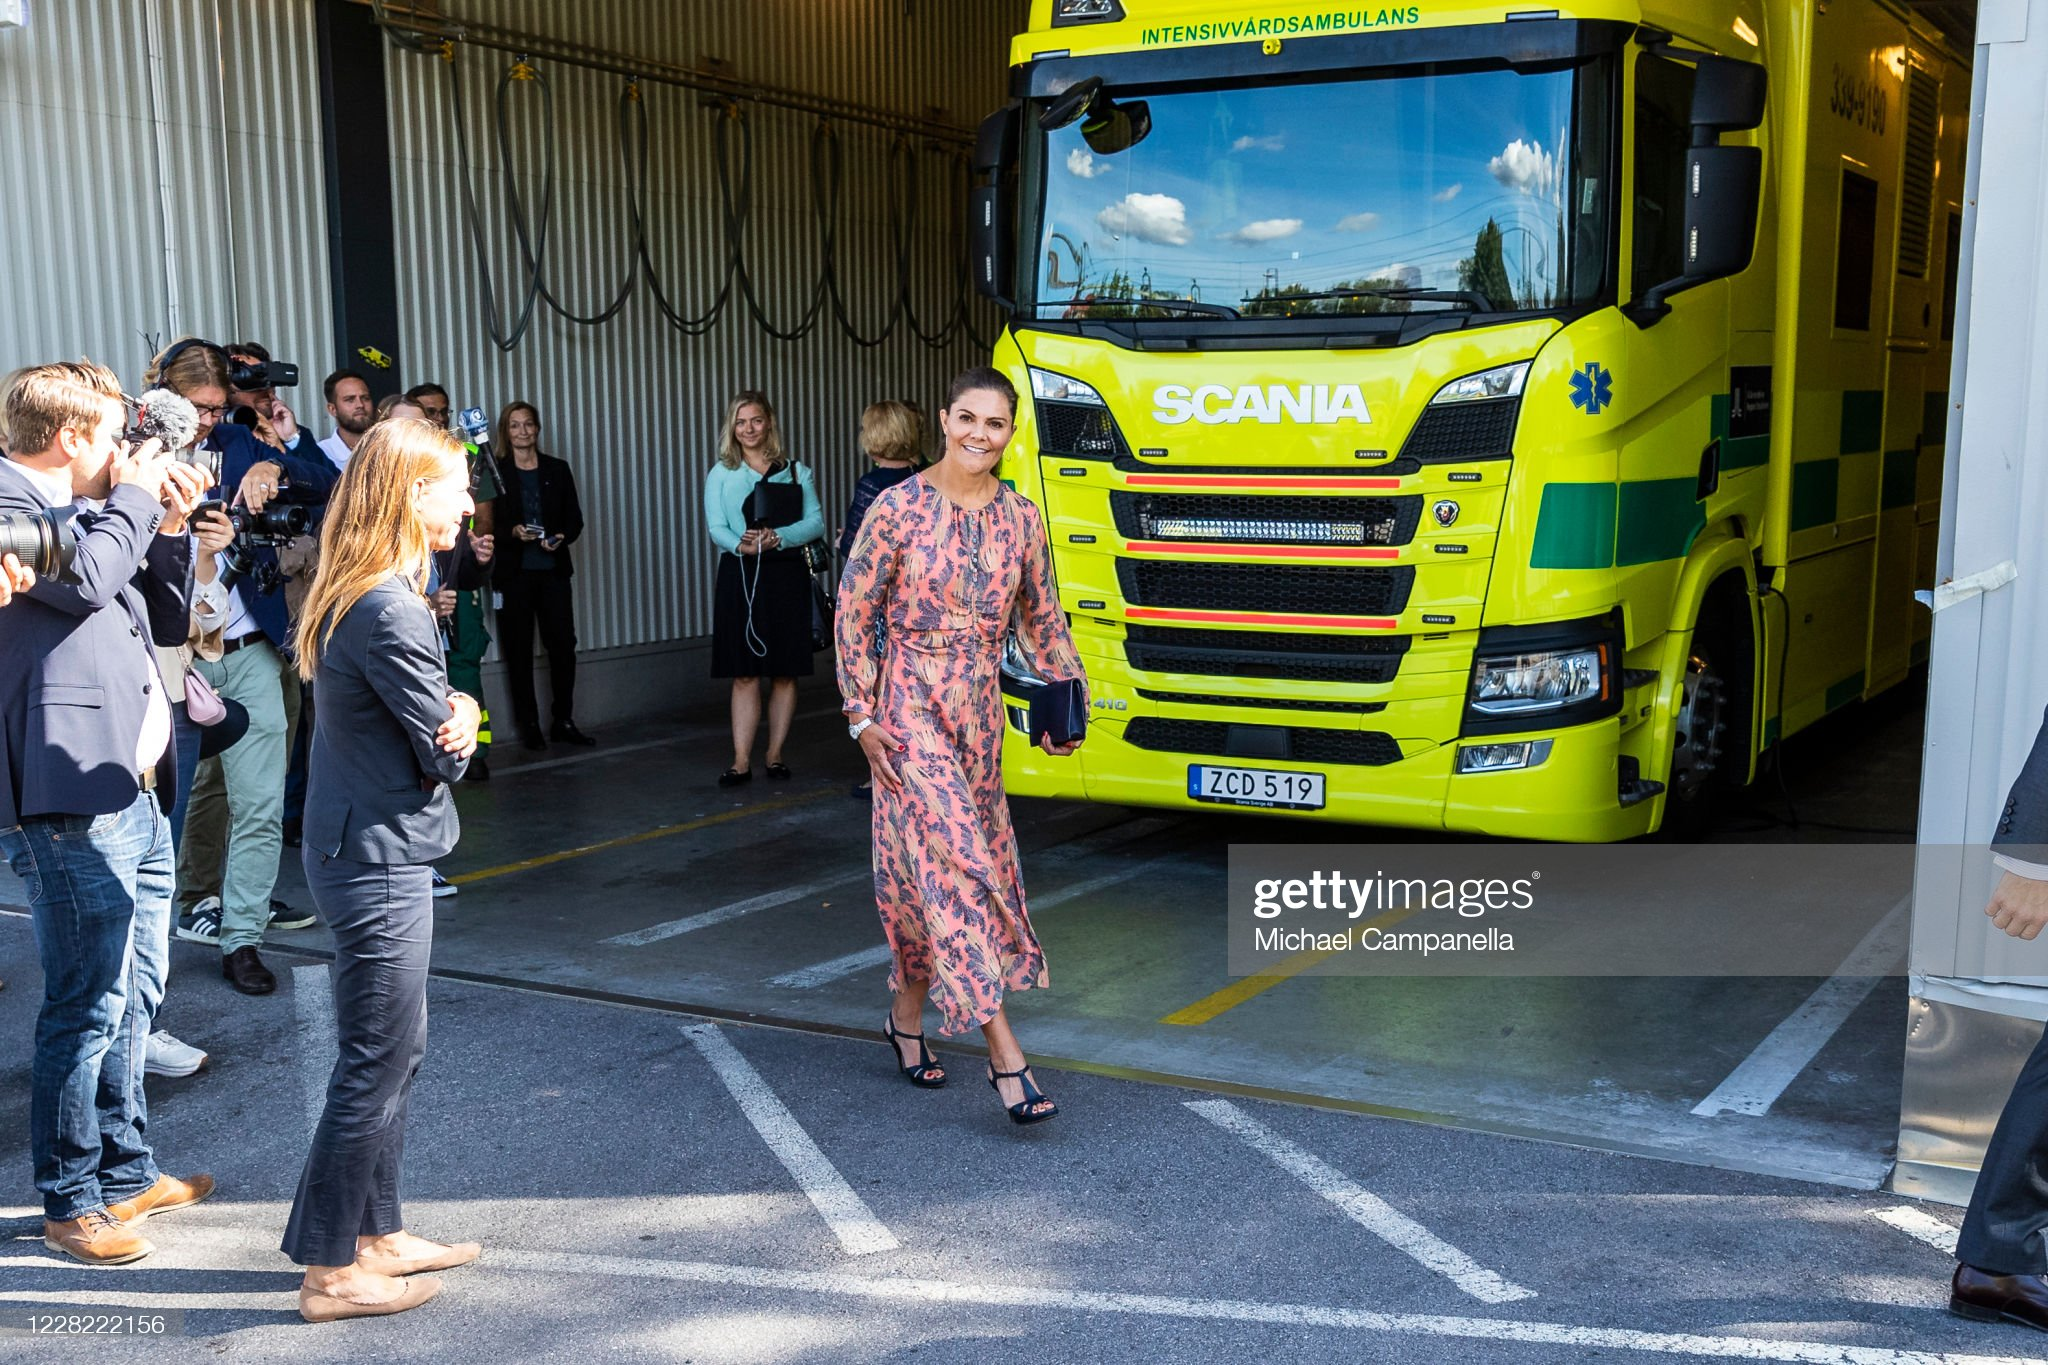 crown-princess-victoria-of-sweden-visits-an-ambulance-station-in-the-picture-id1228222156